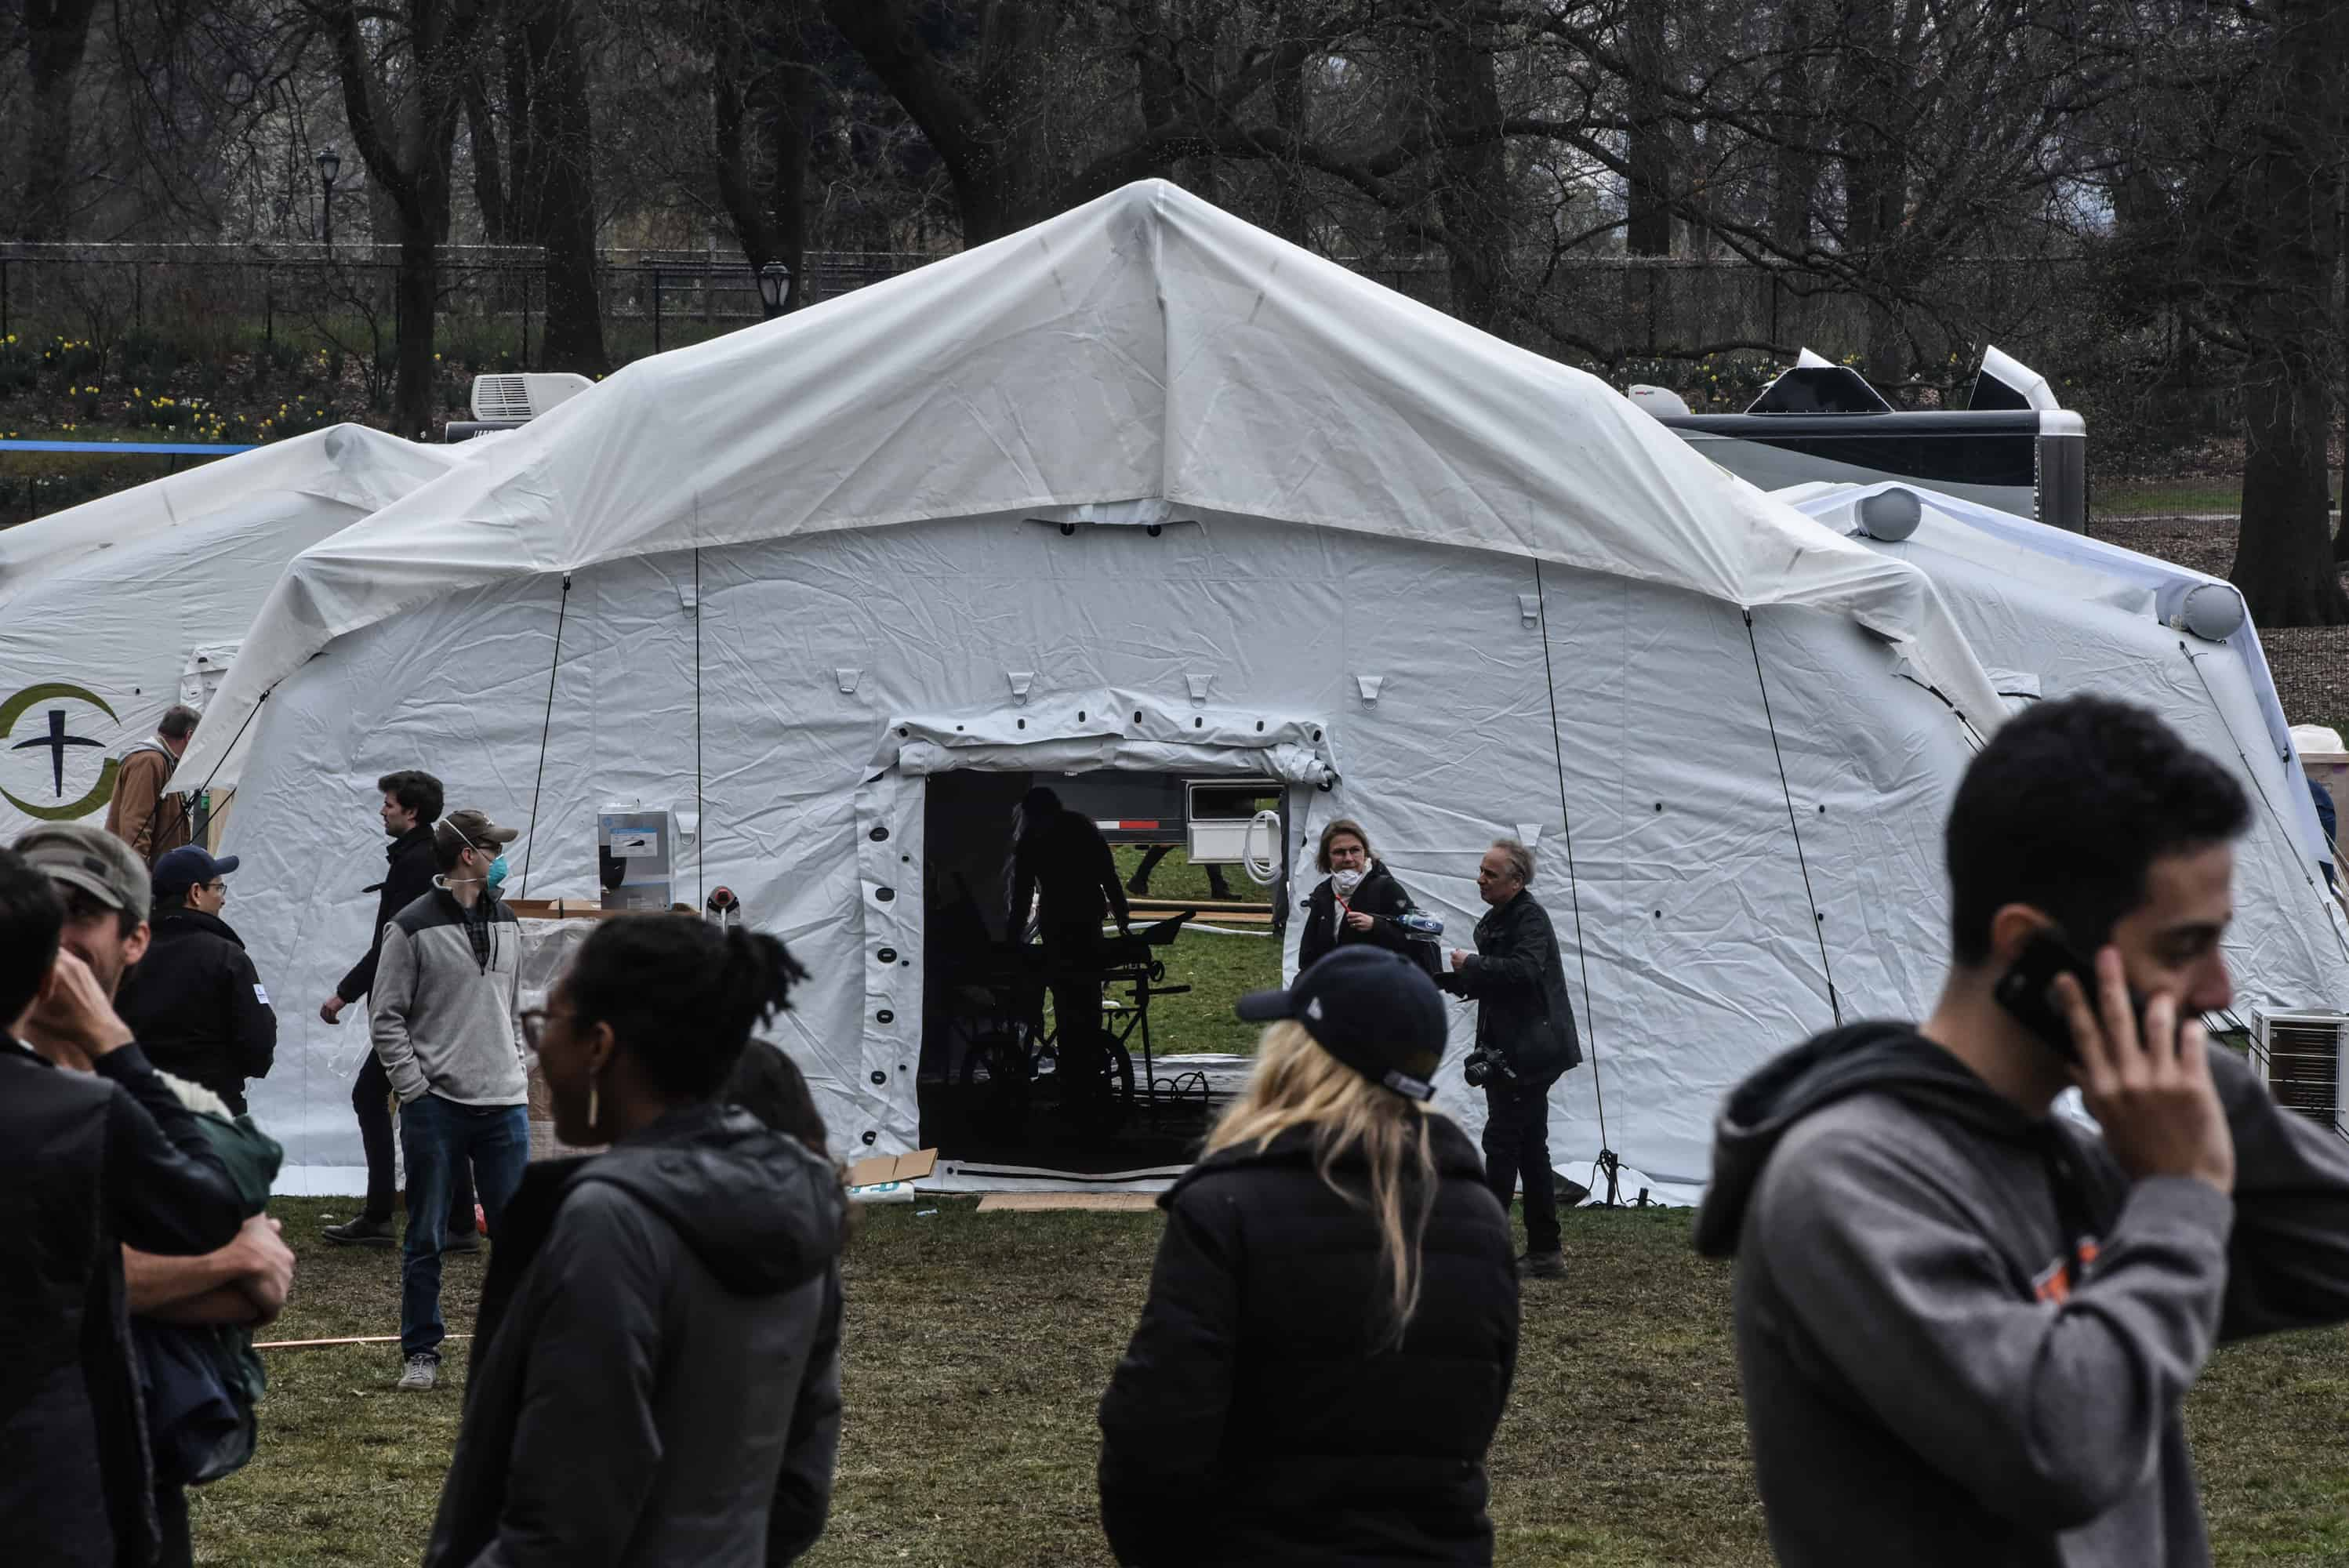 New York City has turned a portion of Central Park into a makeshift hospital to help treat coronavirus patients.